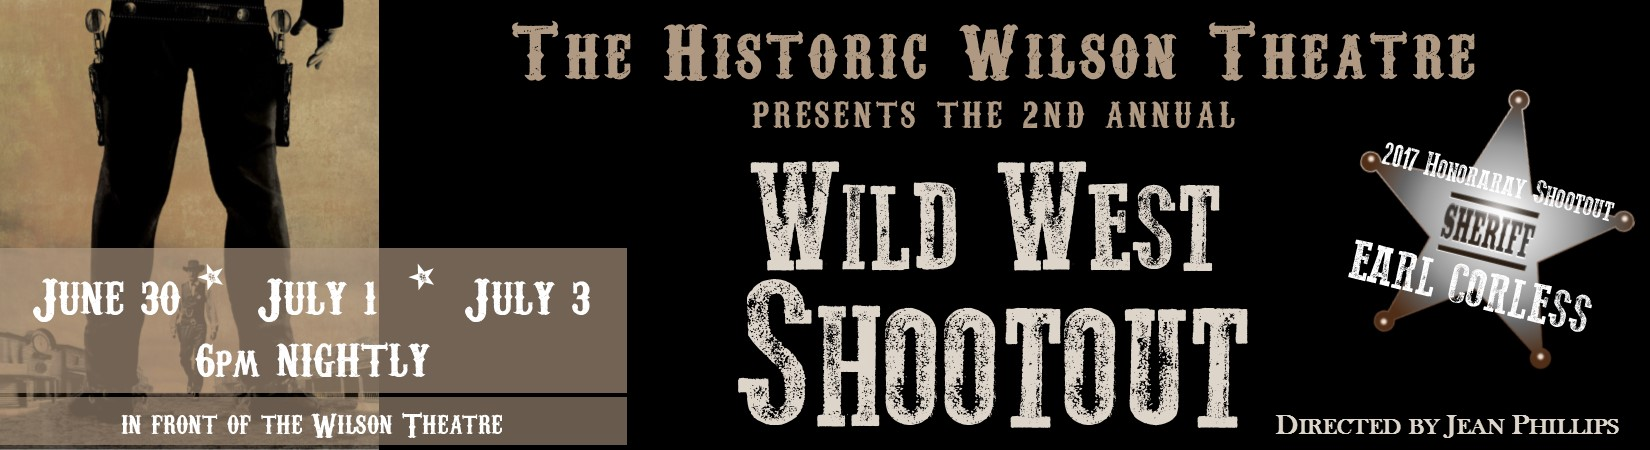 June 30, July 1 & 3 - Wild West Shootout